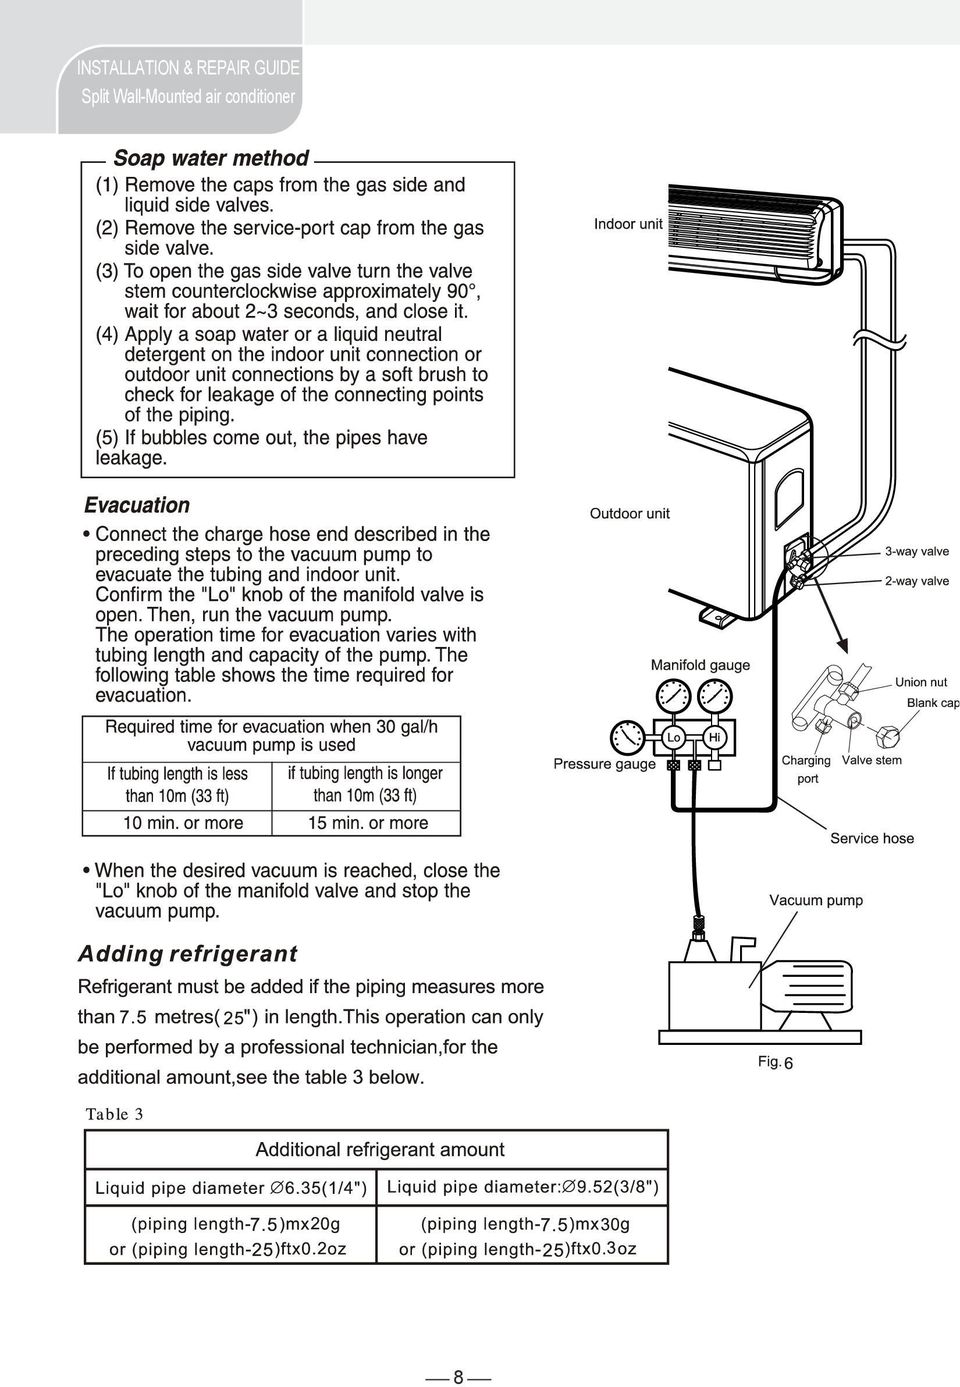 Installation Manual High Wall Split Air Conditioner Pdf Conditioning Schematic 25 11 9 Repair Guide Mounted